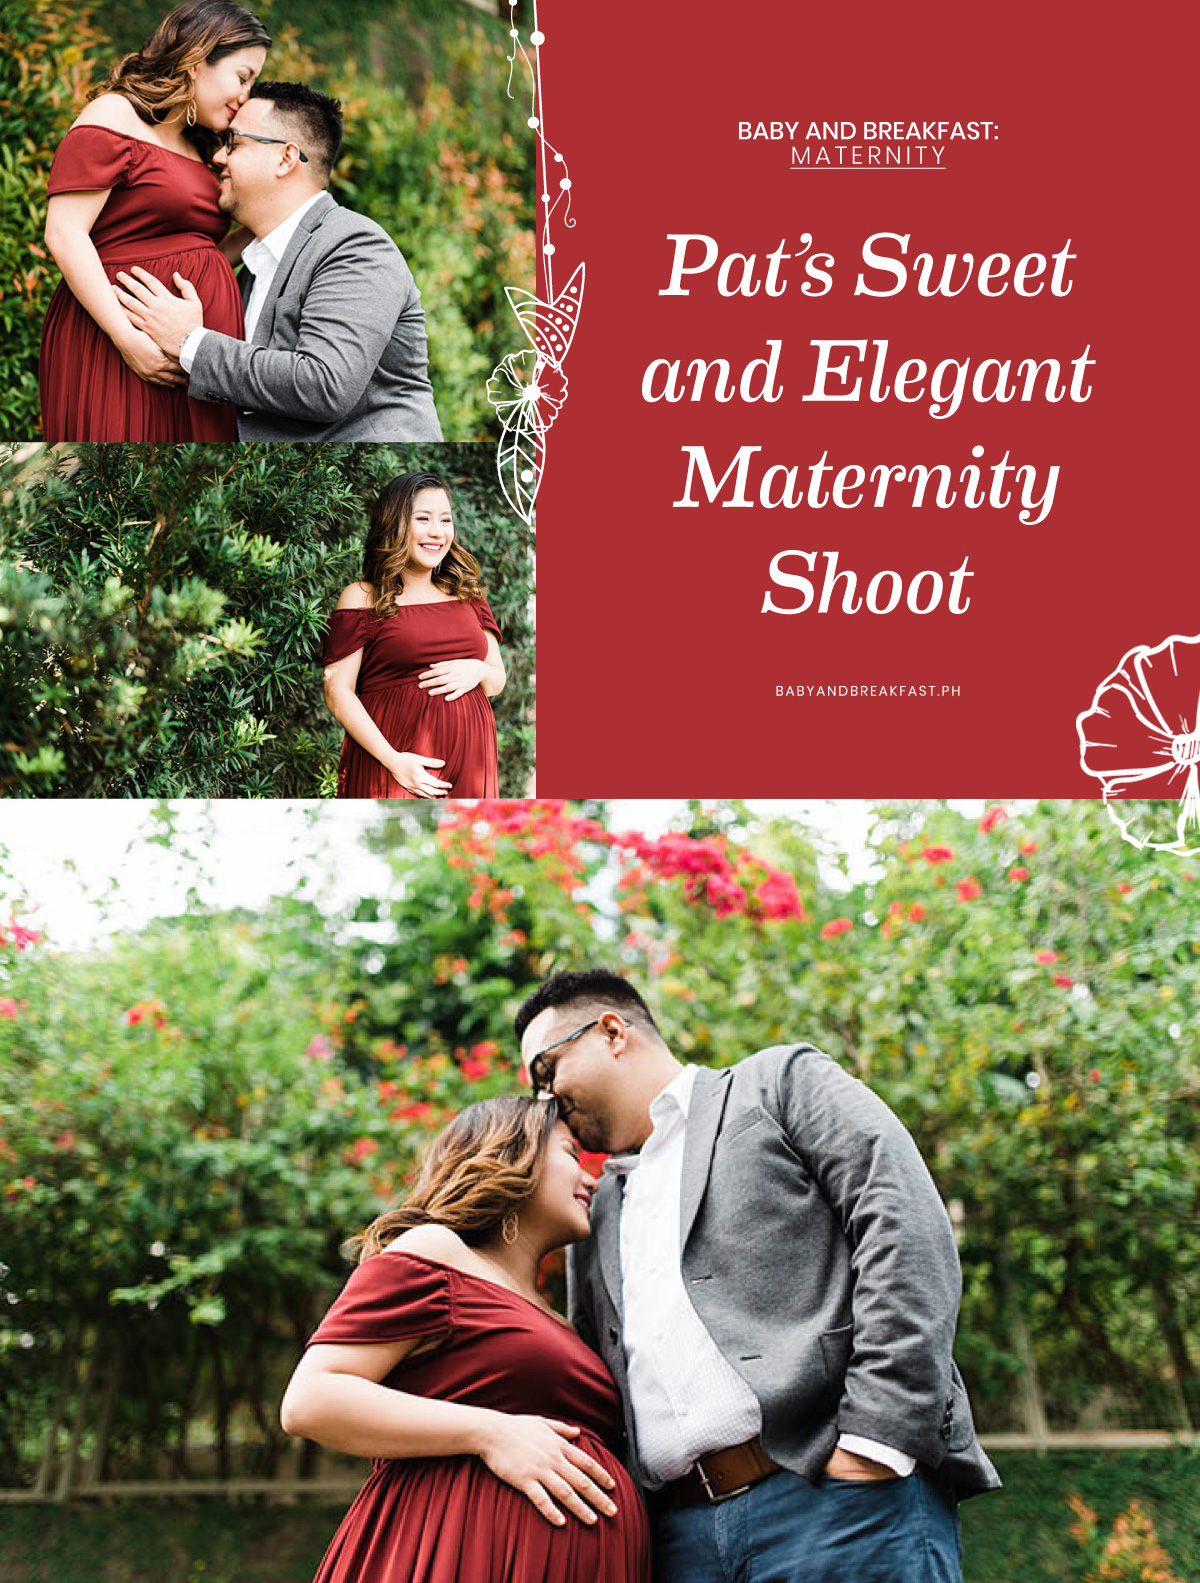 Baby and Breakfast: Maternity Pat's Sweet and Elegant Maternity Shoot